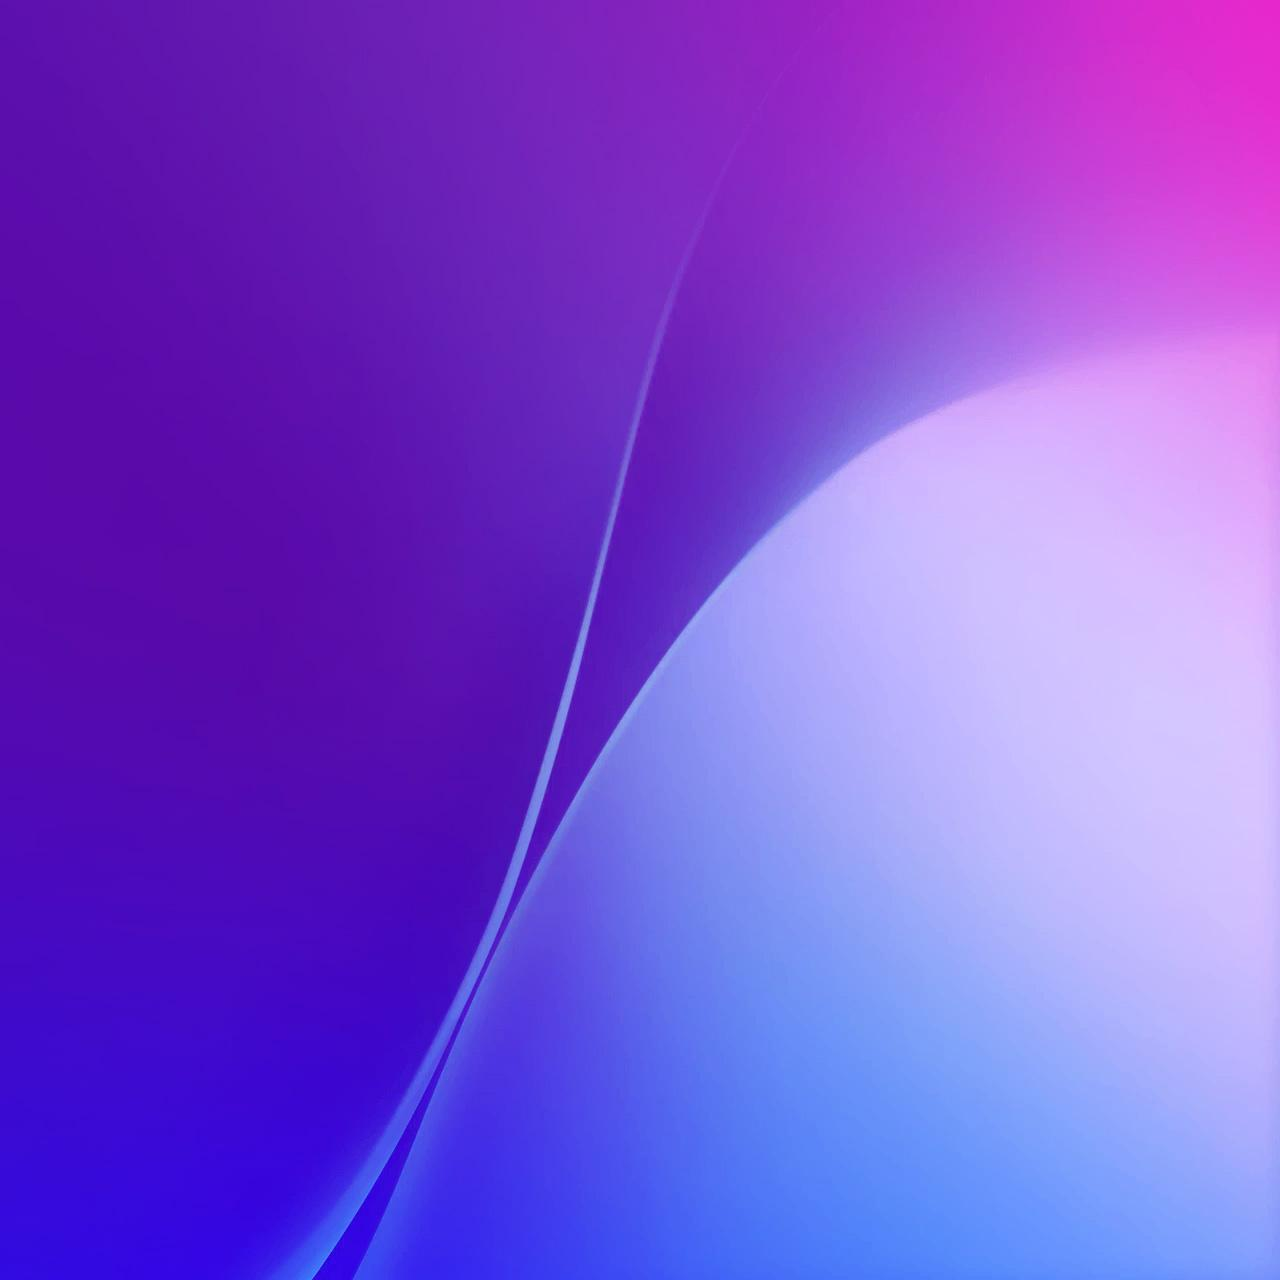 Samsung Galaxy J1 Wallpapers Wallpaper Cave